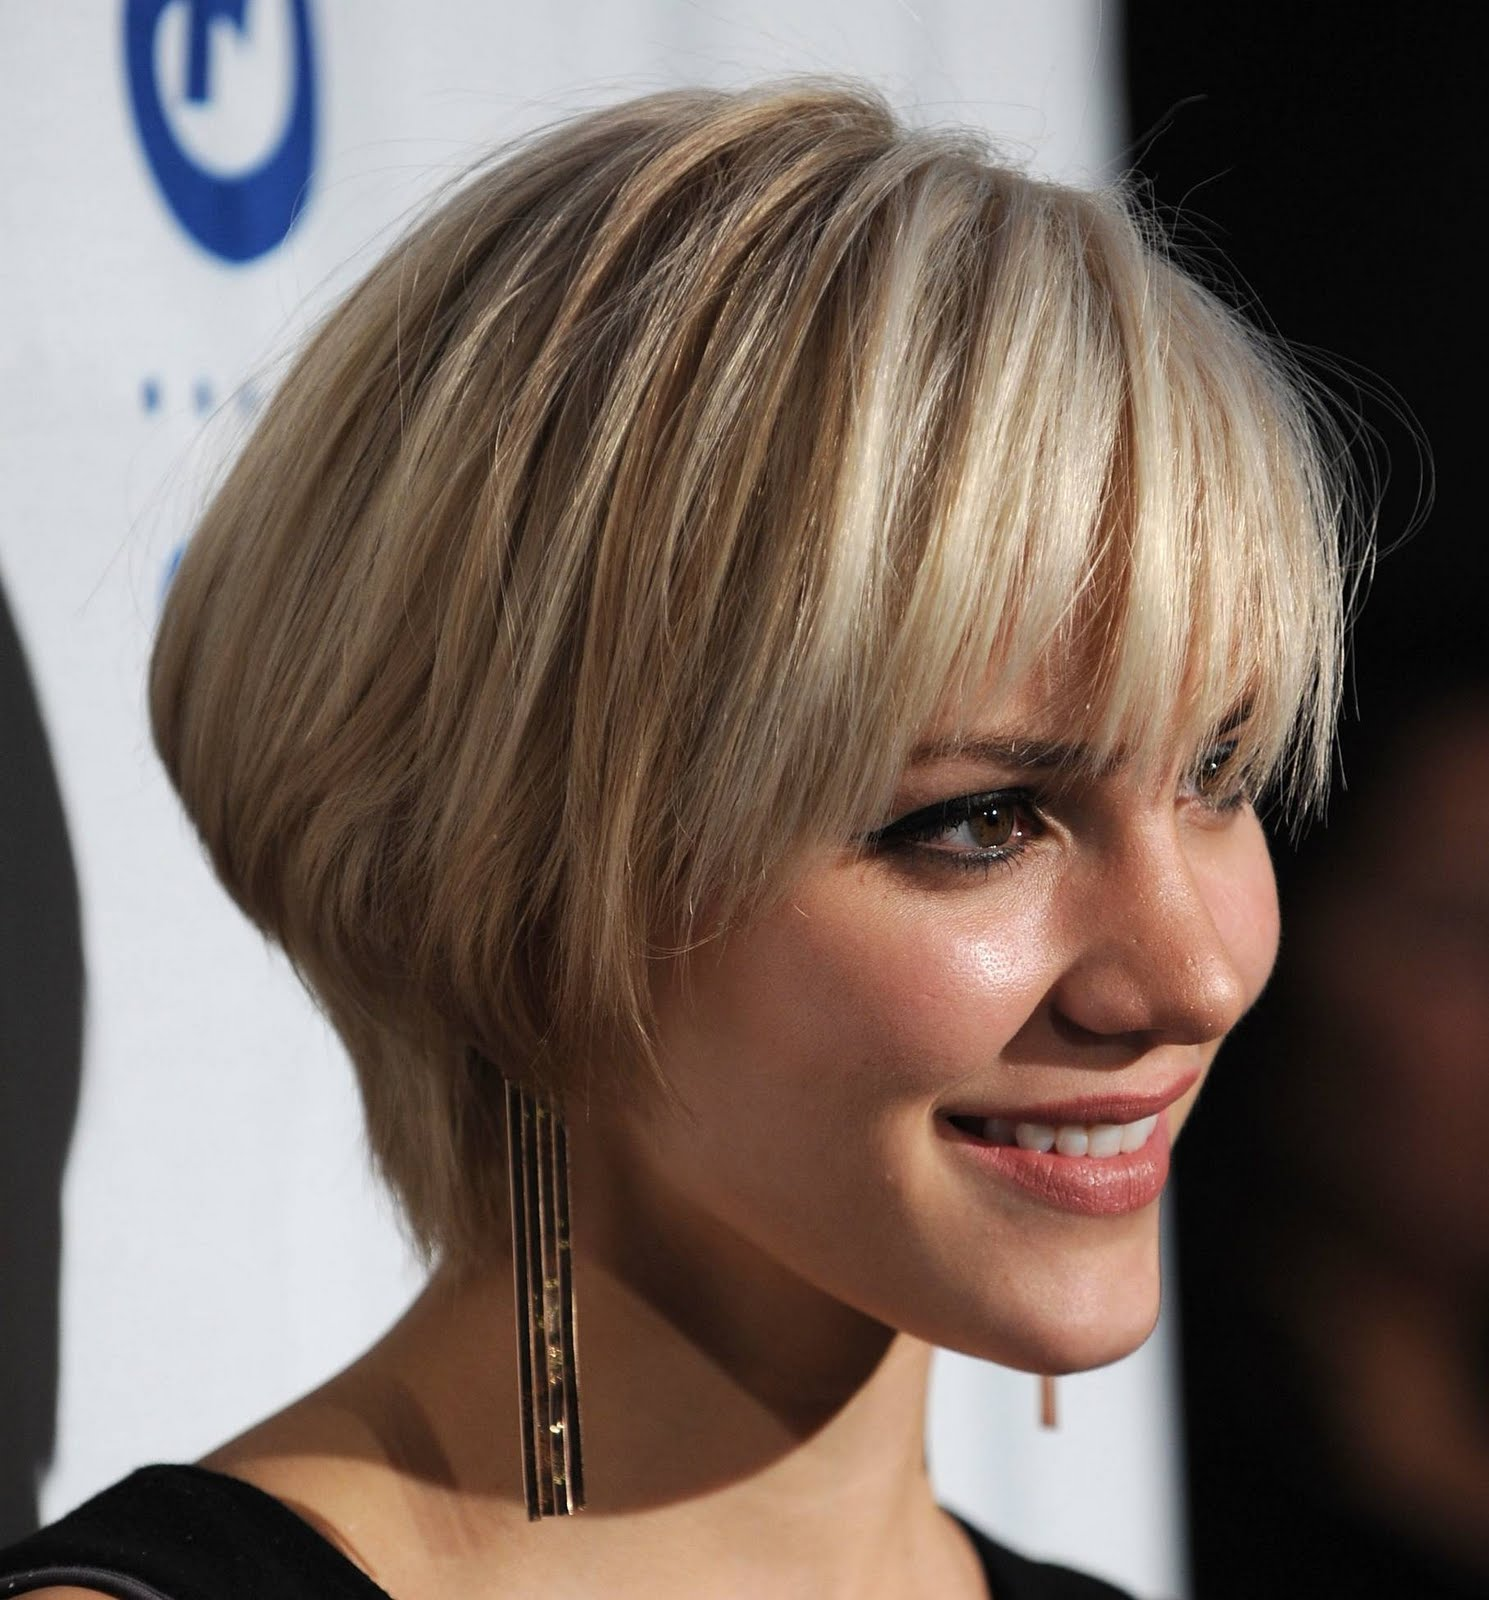 Innovative The Bob Is A Classic Hairstyle That Will Never Go Out Of Fashion  This Bob Is Easy To Maintain And Not Too Short Nor Too Long A Perfect Look For A Fashion Minded Woman Who Doesnt Want Too Much Time On Doing Her Hair We Love Her Shiny